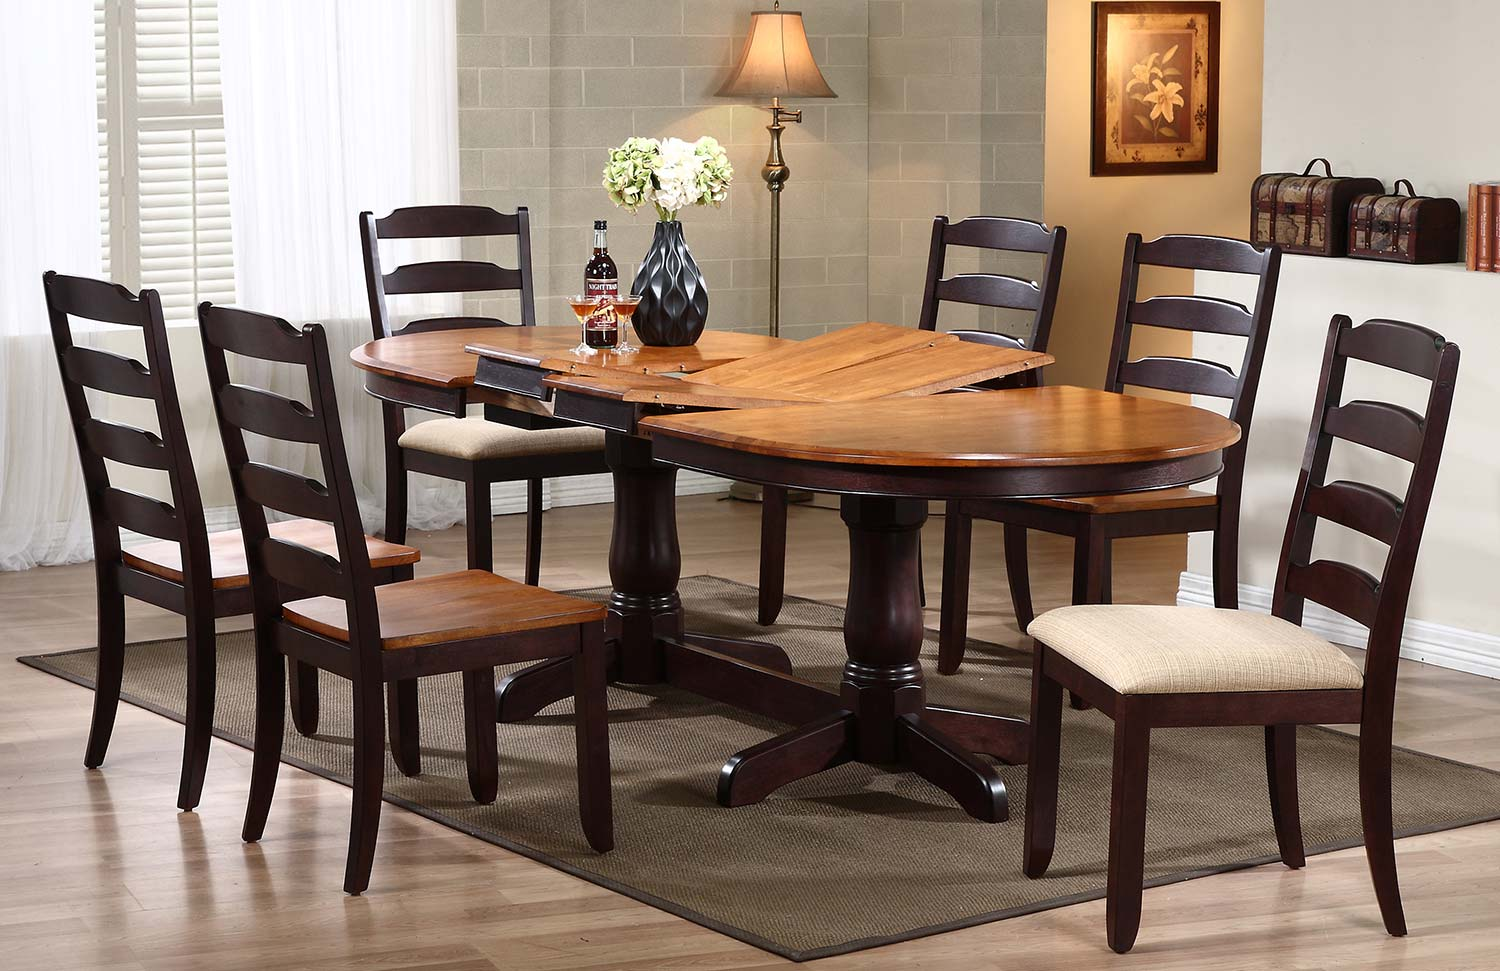 Iconic Furniture Oval Double Pedestal Dining Set with Ladder Back Dining Chair - Whiskey/Mocha